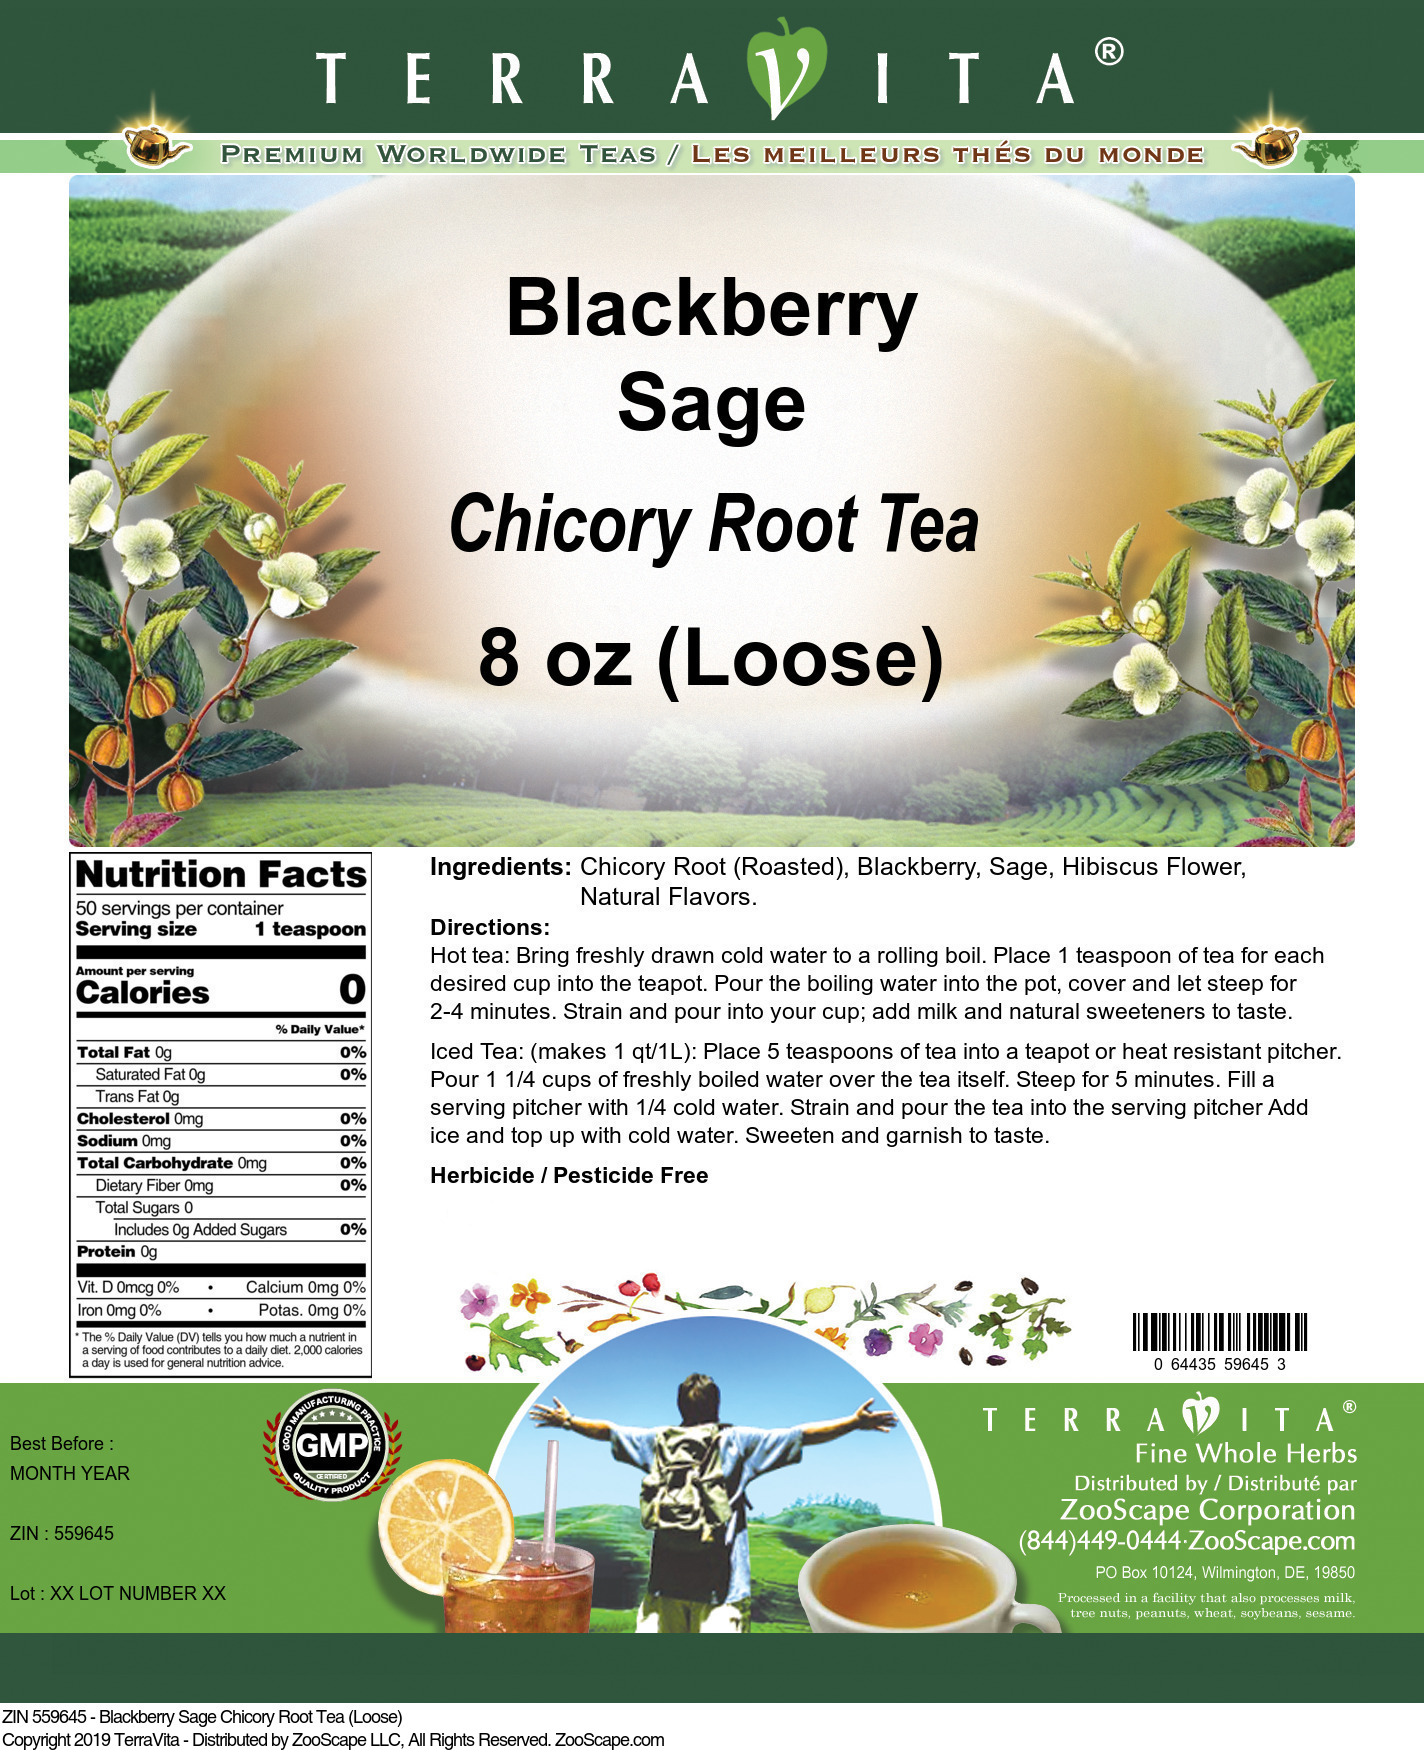 Blackberry Sage Chicory Root